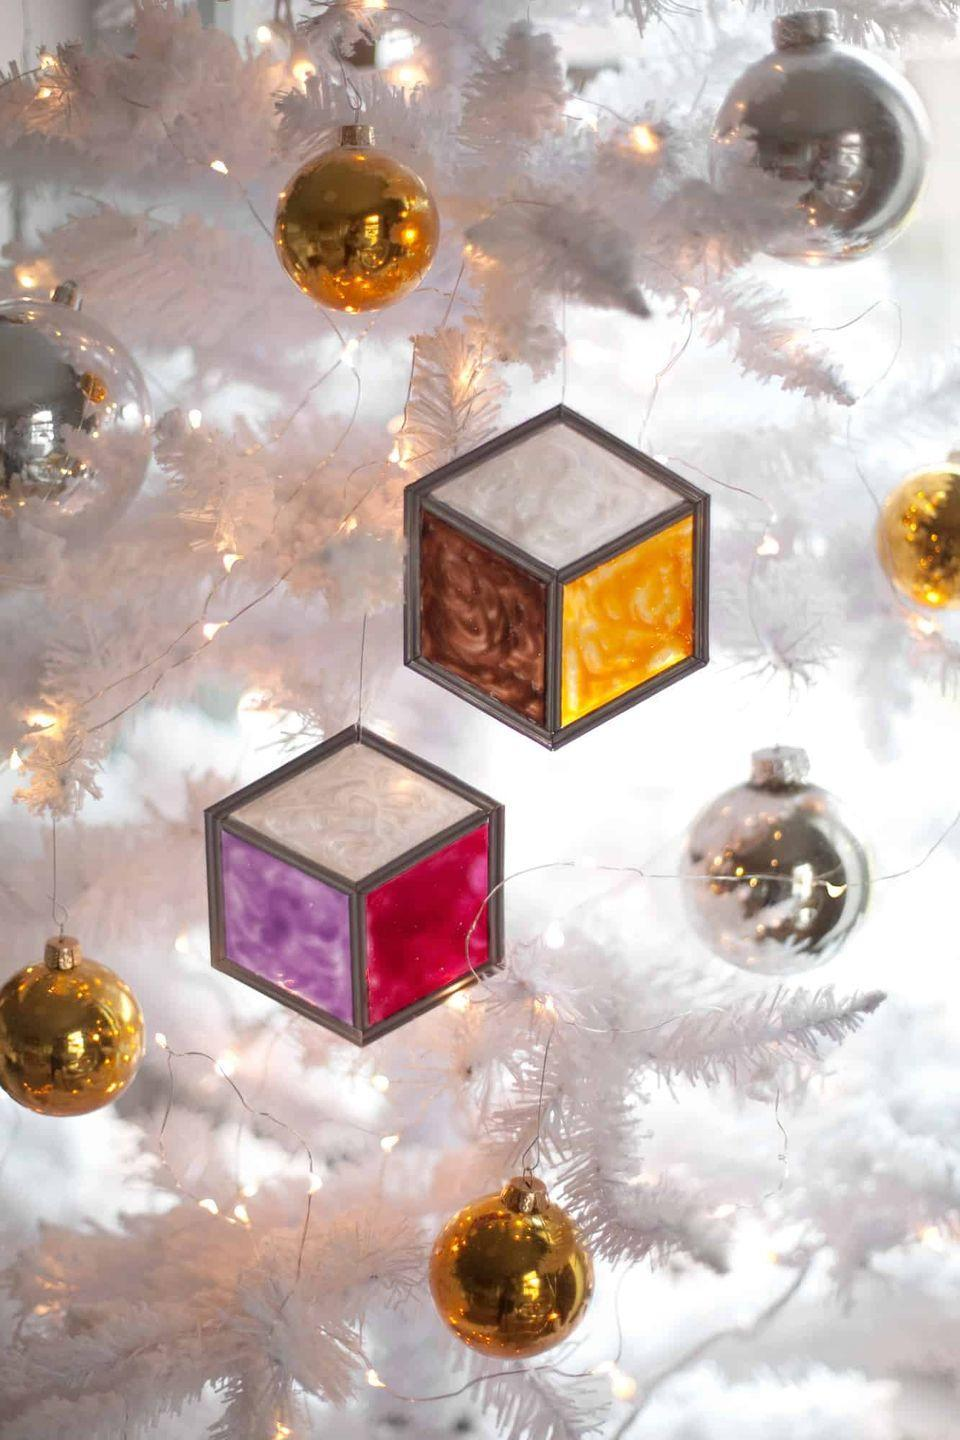 """<p>You don't actually need any glass to make this cool and colorful ornament—just some plexiglass and paint. </p><p><em>Get the tutorial at <a href=""""https://abeautifulmess.com/stained-glass-tumbling-block-ornaments/"""" rel=""""nofollow noopener"""" target=""""_blank"""" data-ylk=""""slk:A Beautiful Mess"""" class=""""link rapid-noclick-resp"""">A Beautiful Mess</a>.</em></p><p><a class=""""link rapid-noclick-resp"""" href=""""https://www.amazon.com/gp/product/B01N7MLF3D?tag=syn-yahoo-20&ascsubtag=%5Bartid%7C10072.g.34443405%5Bsrc%7Cyahoo-us"""" rel=""""nofollow noopener"""" target=""""_blank"""" data-ylk=""""slk:SHOP PLEXIGLASS"""">SHOP PLEXIGLASS</a></p>"""